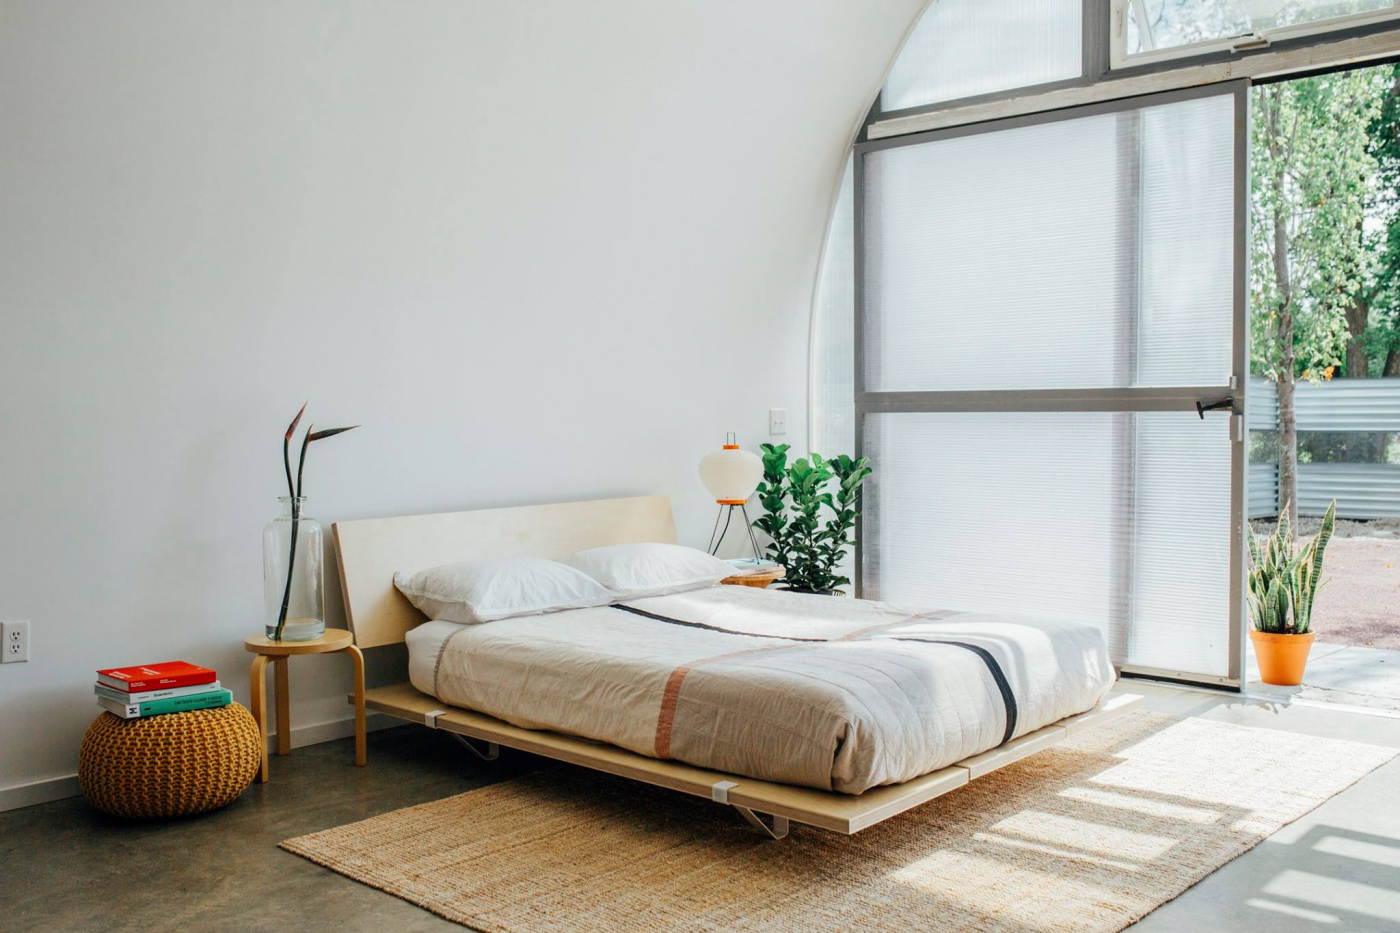 This Company Is Making Same Day Furniture Delivery Dreams Come True